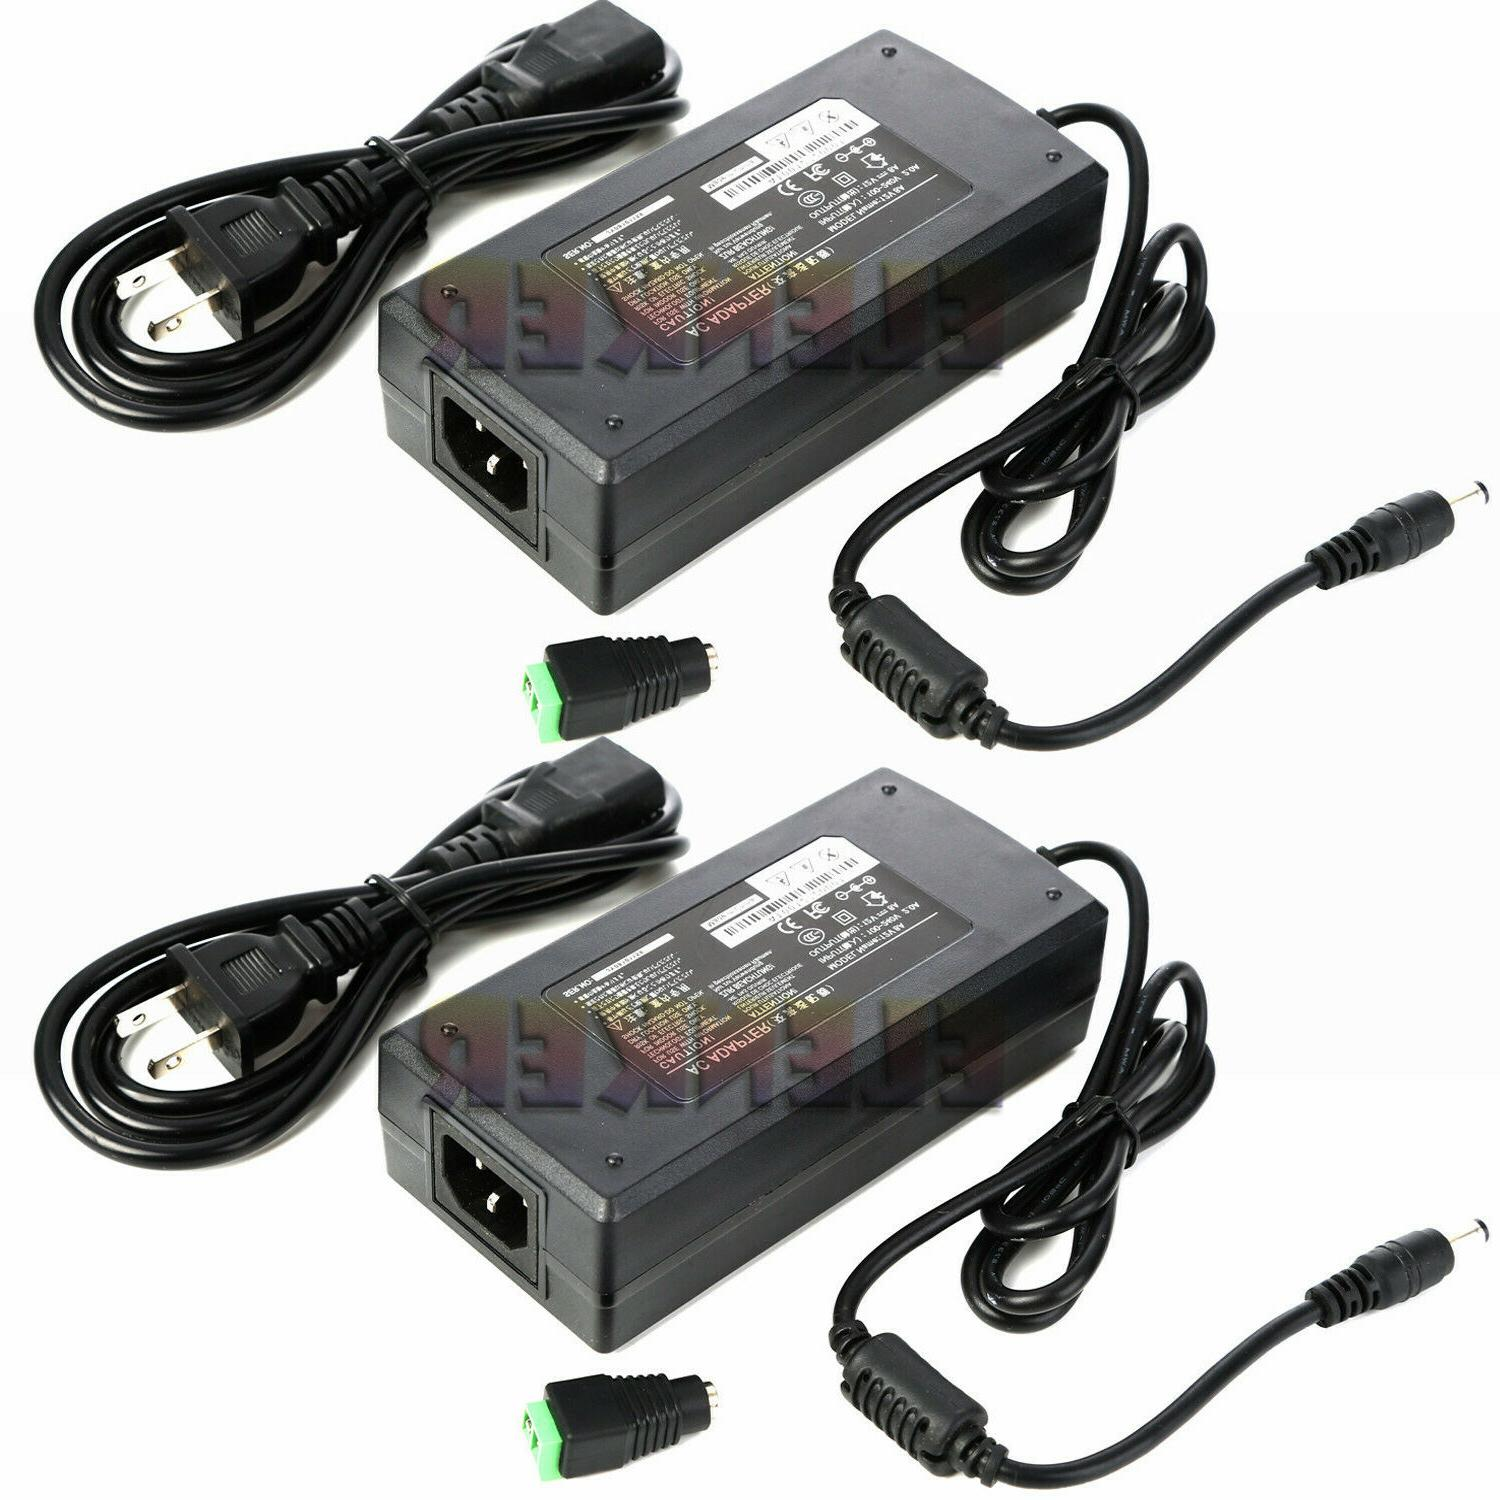 2x DC12V 10A 120W Switching Supply Transformer for Light